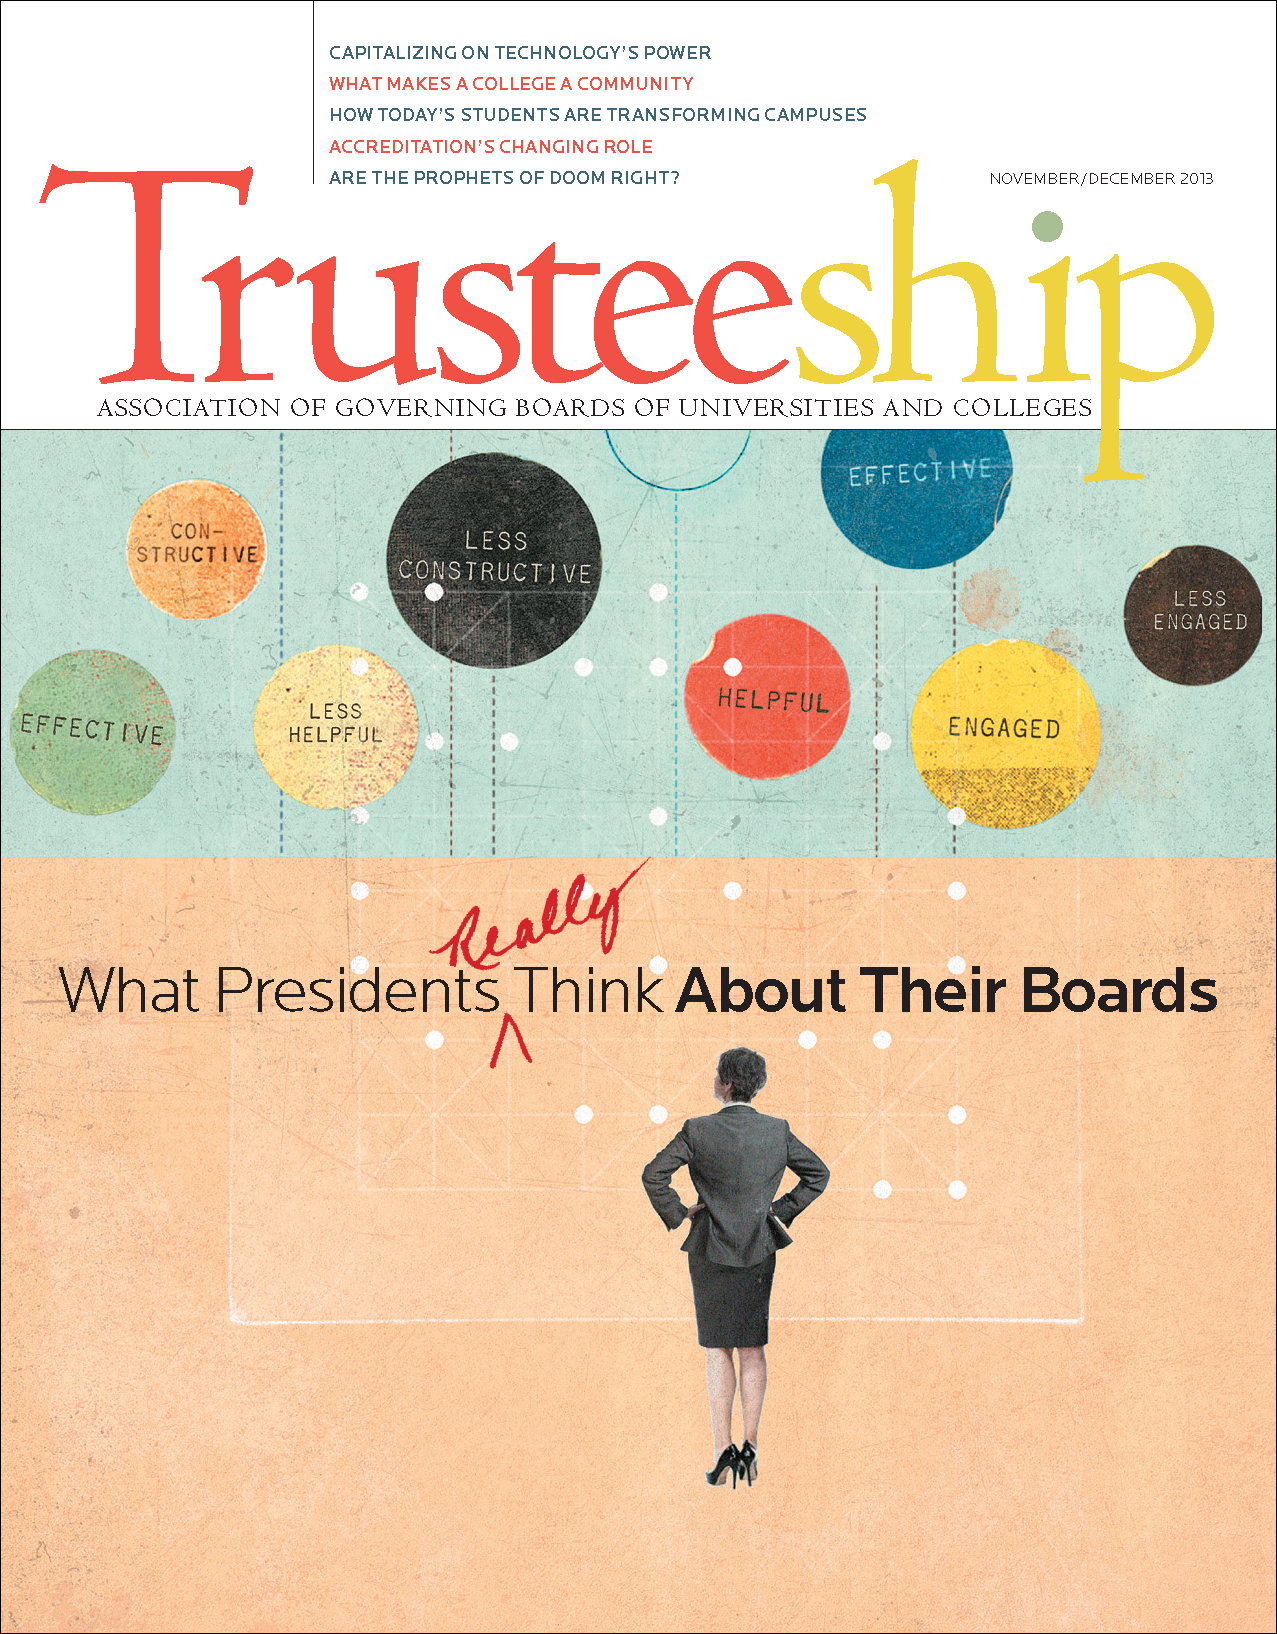 Trusteeship Issue: What Presidents Really Think About Their Boards - November/December 2013